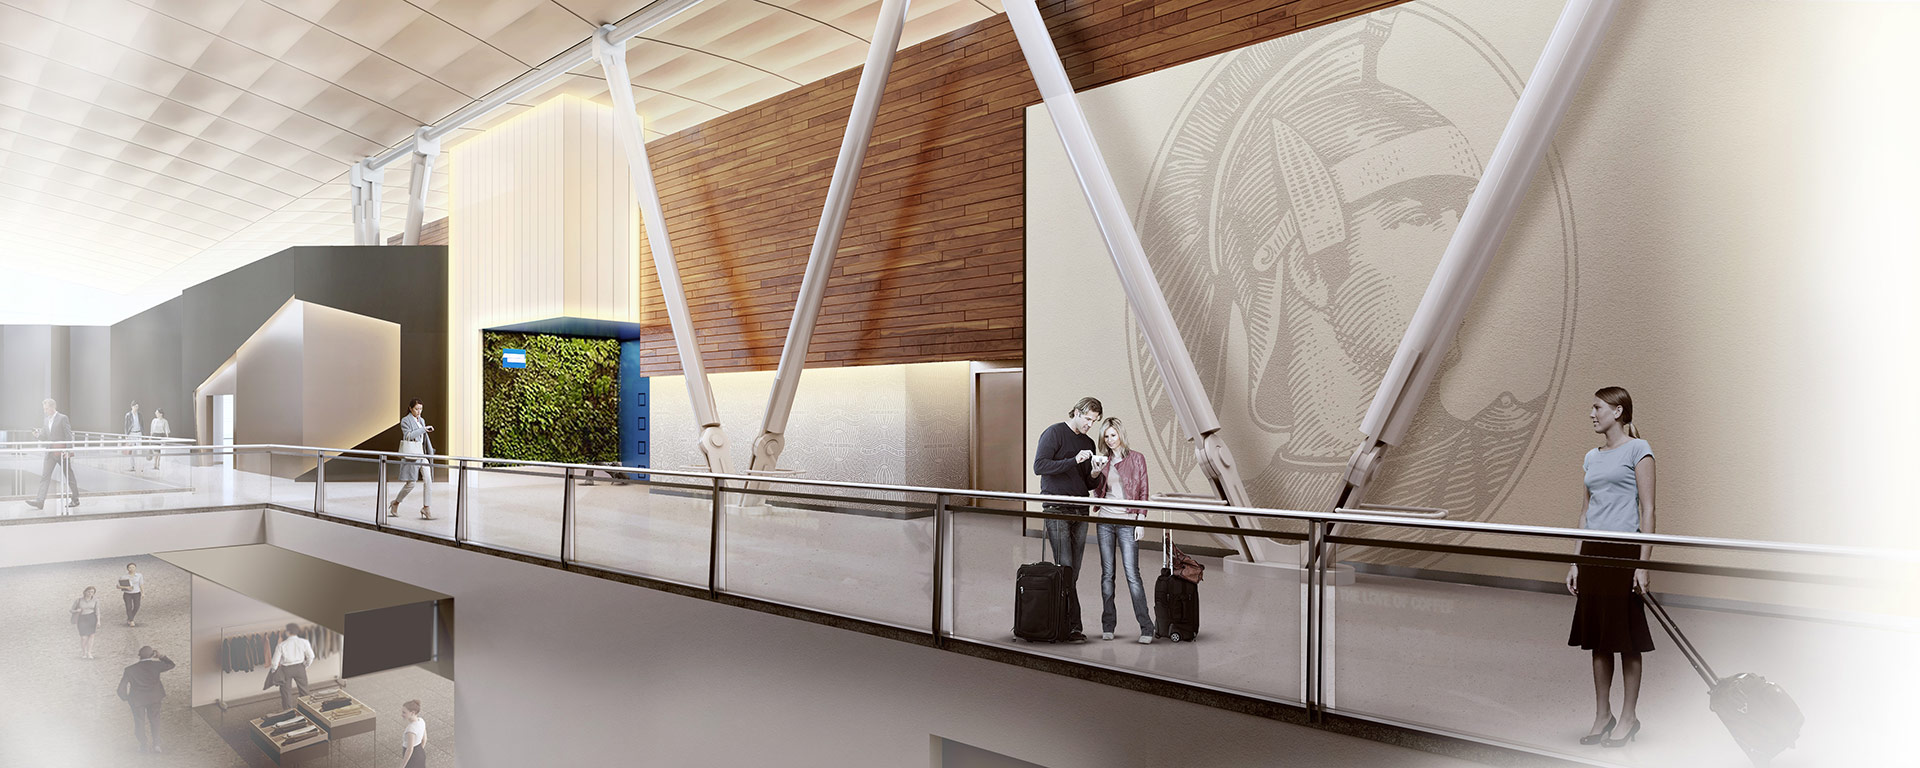 American Express to Open World's Largest Centurion Lounge at New York-JFK Airport